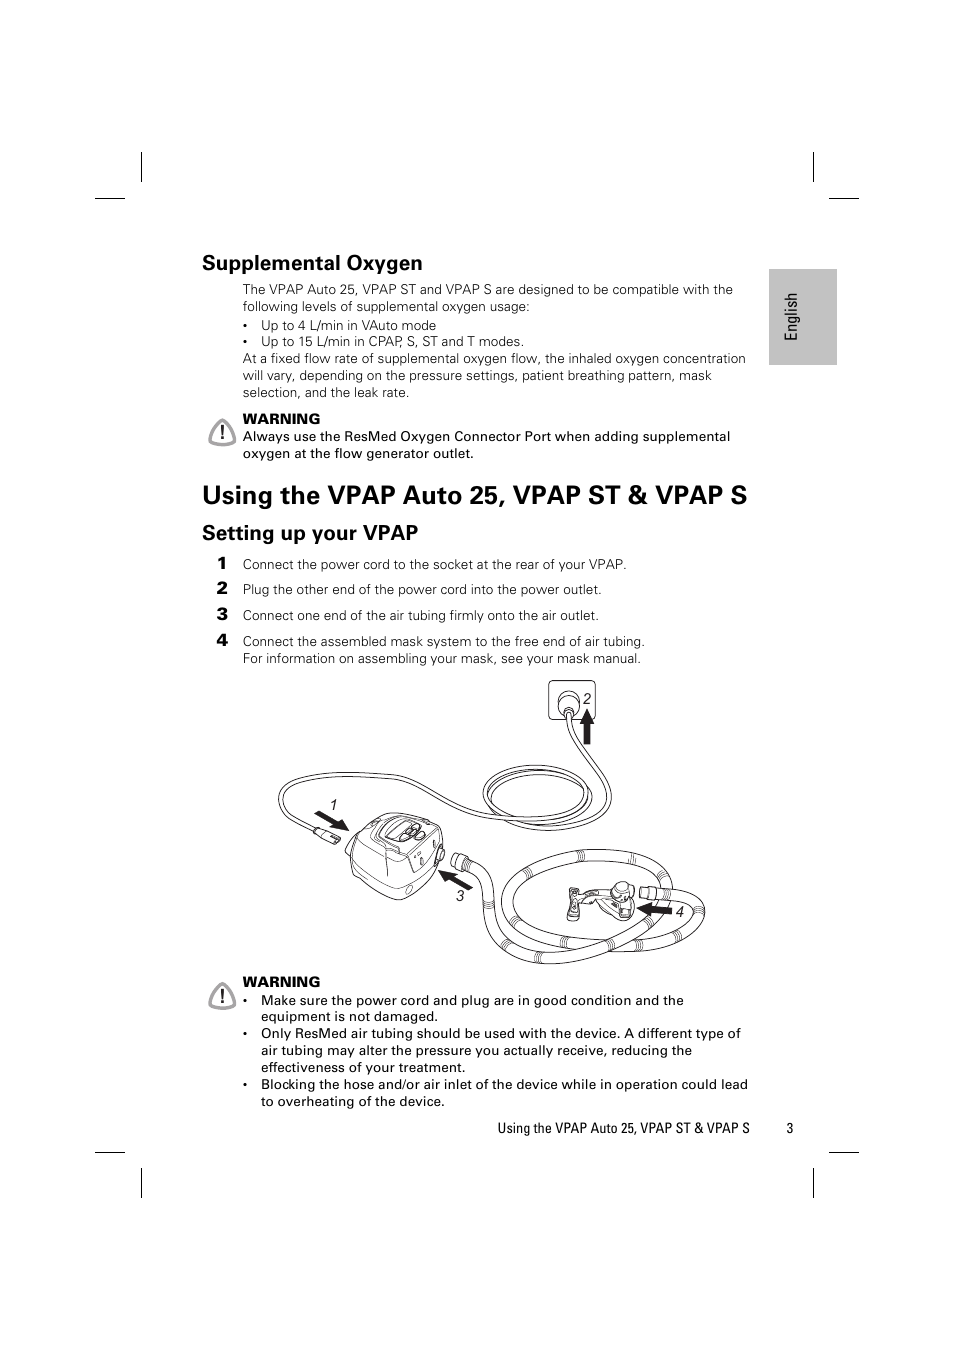 resmed vpap auto 25 manual